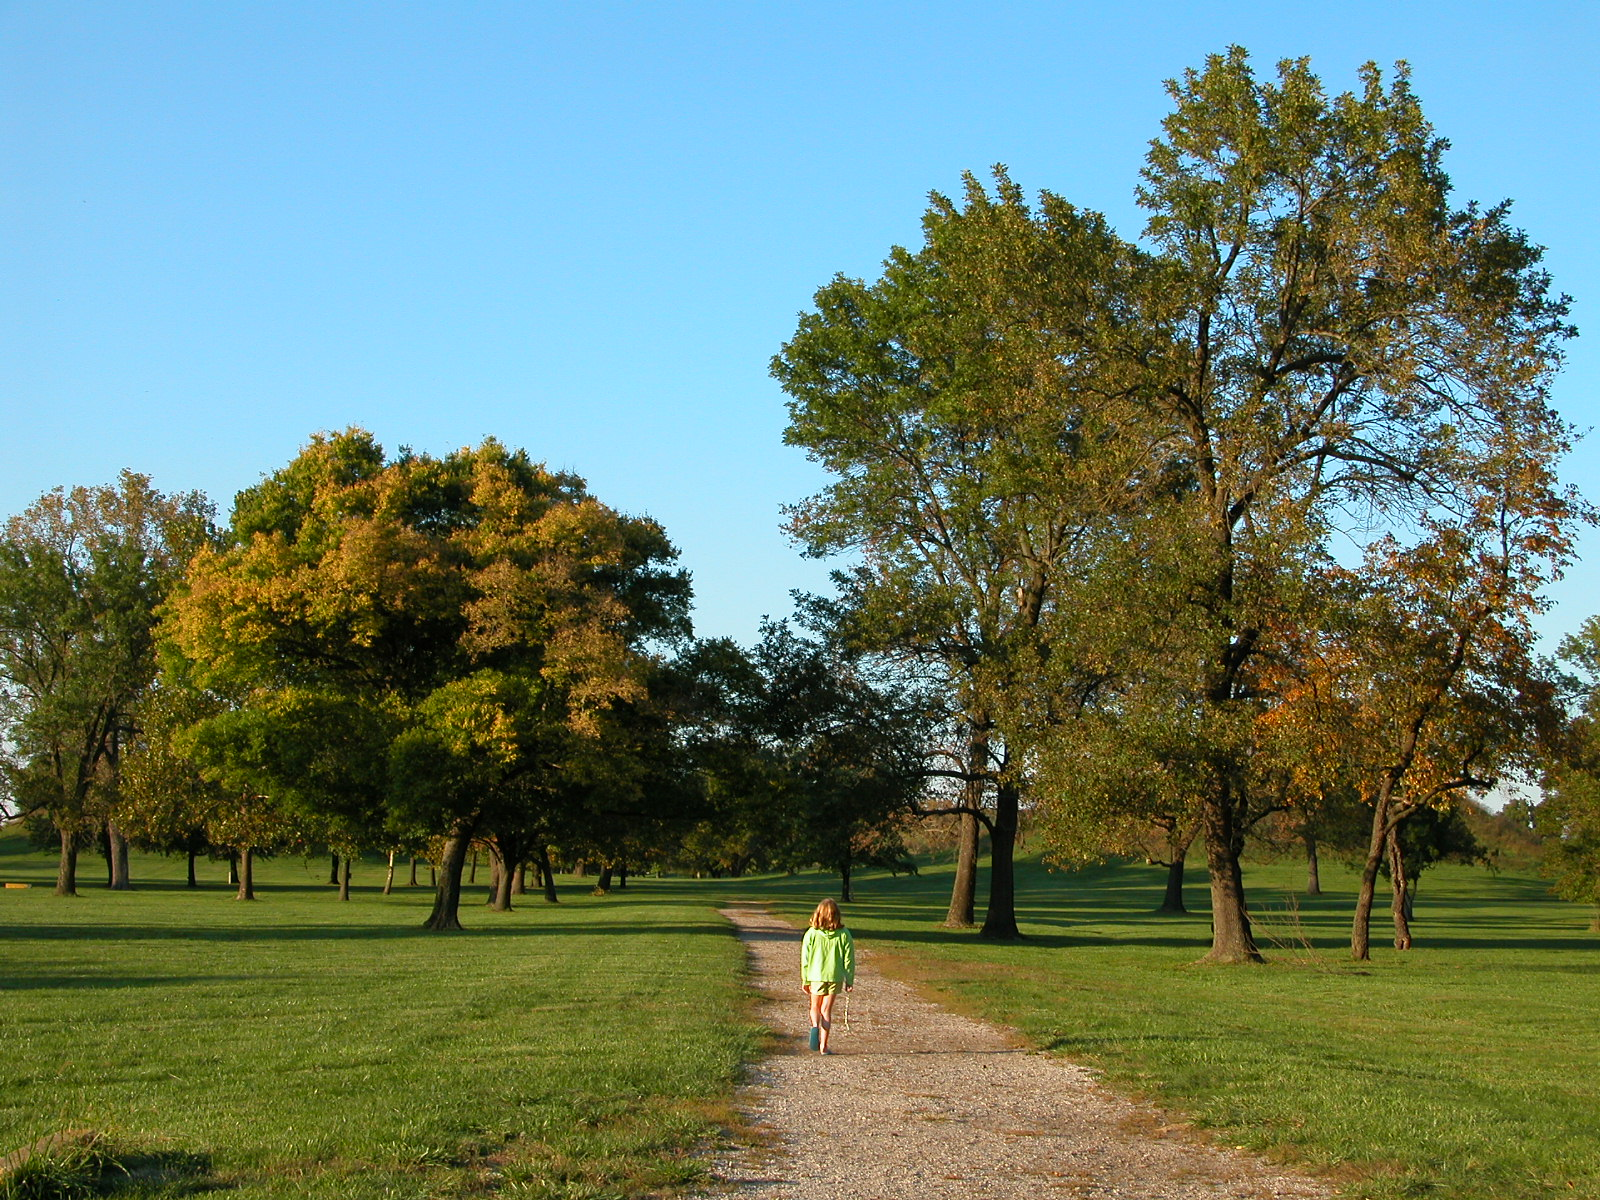 Cahokia Mounds State Historic Site